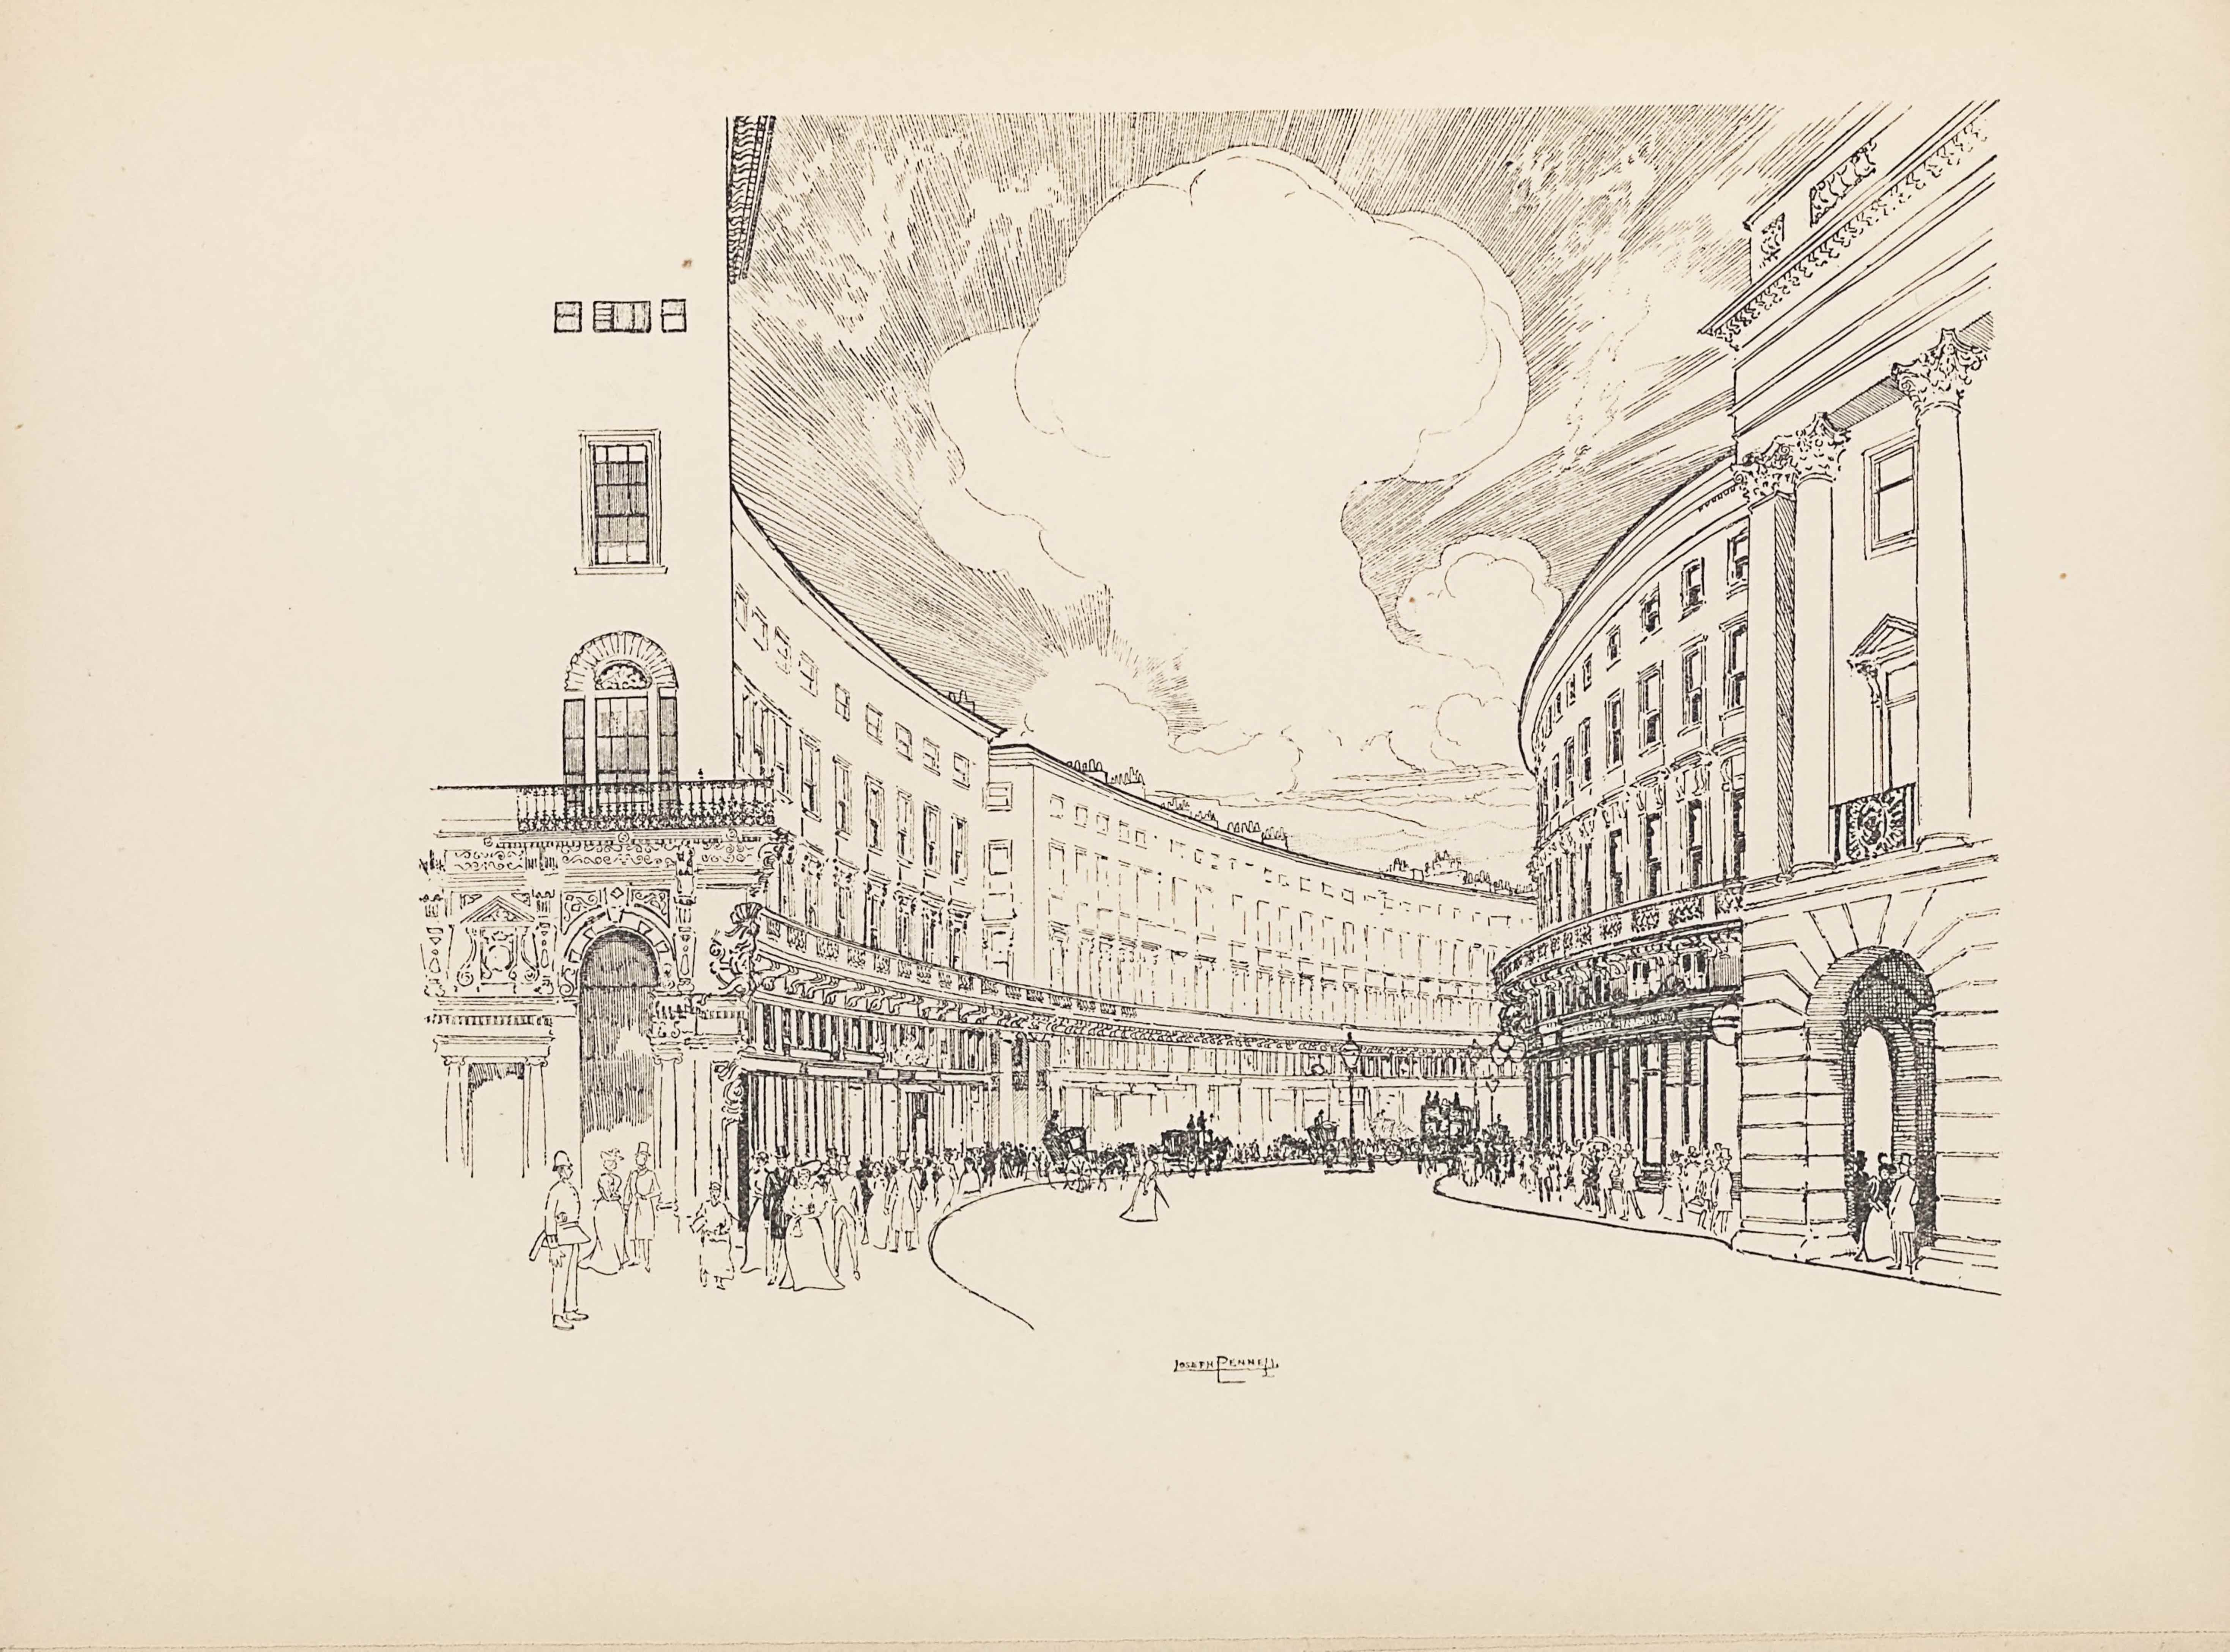 "The line block reproduction of a pen-and-ink drawing is landscape oriented. The image is a street view of Regent Street in London, from the perspective of a pedestrian on the sidewalk. The side of a building is seen from this perspective with an arched doorway and ornamented detailing above in the stone work. Above the doorway sits a balcony with an arched door leading out. A window sits above the balcony, and a set of three windows appear above. To the right of the building is a sidewalk and then the road, which travels straight towards the mid-ground and then curves off to the right. Many pedestrians line the sidewalk in front of the building, which curves along the left side of the road. The building ends, leaving a slight gap before the next identical building begins and follows the same curve out of sight. On the opposite side of the road is a mirrored sidewalk and building set-up. The building entrance on the far right is comprised of a large archway made of big blocks of stone. A set of three pillars is situated on top of the arch, and support a protruding roof. Windows line the front of the buildings on both sides of the street in three rows, with smaller windows in the top row. Along the side of the buildings on the left, about a third of the way up, train tracks run along the curve. In the sky that takes up the central background of the image, a large cloud that looks mushroom-like is blooming up, and the sky around seems to be exploding outwards in straight lines. Aligned in the centre on the bottom edge of the image is the text: ""JOSEPH PENNELL"" [caps]. There is no border around the image."